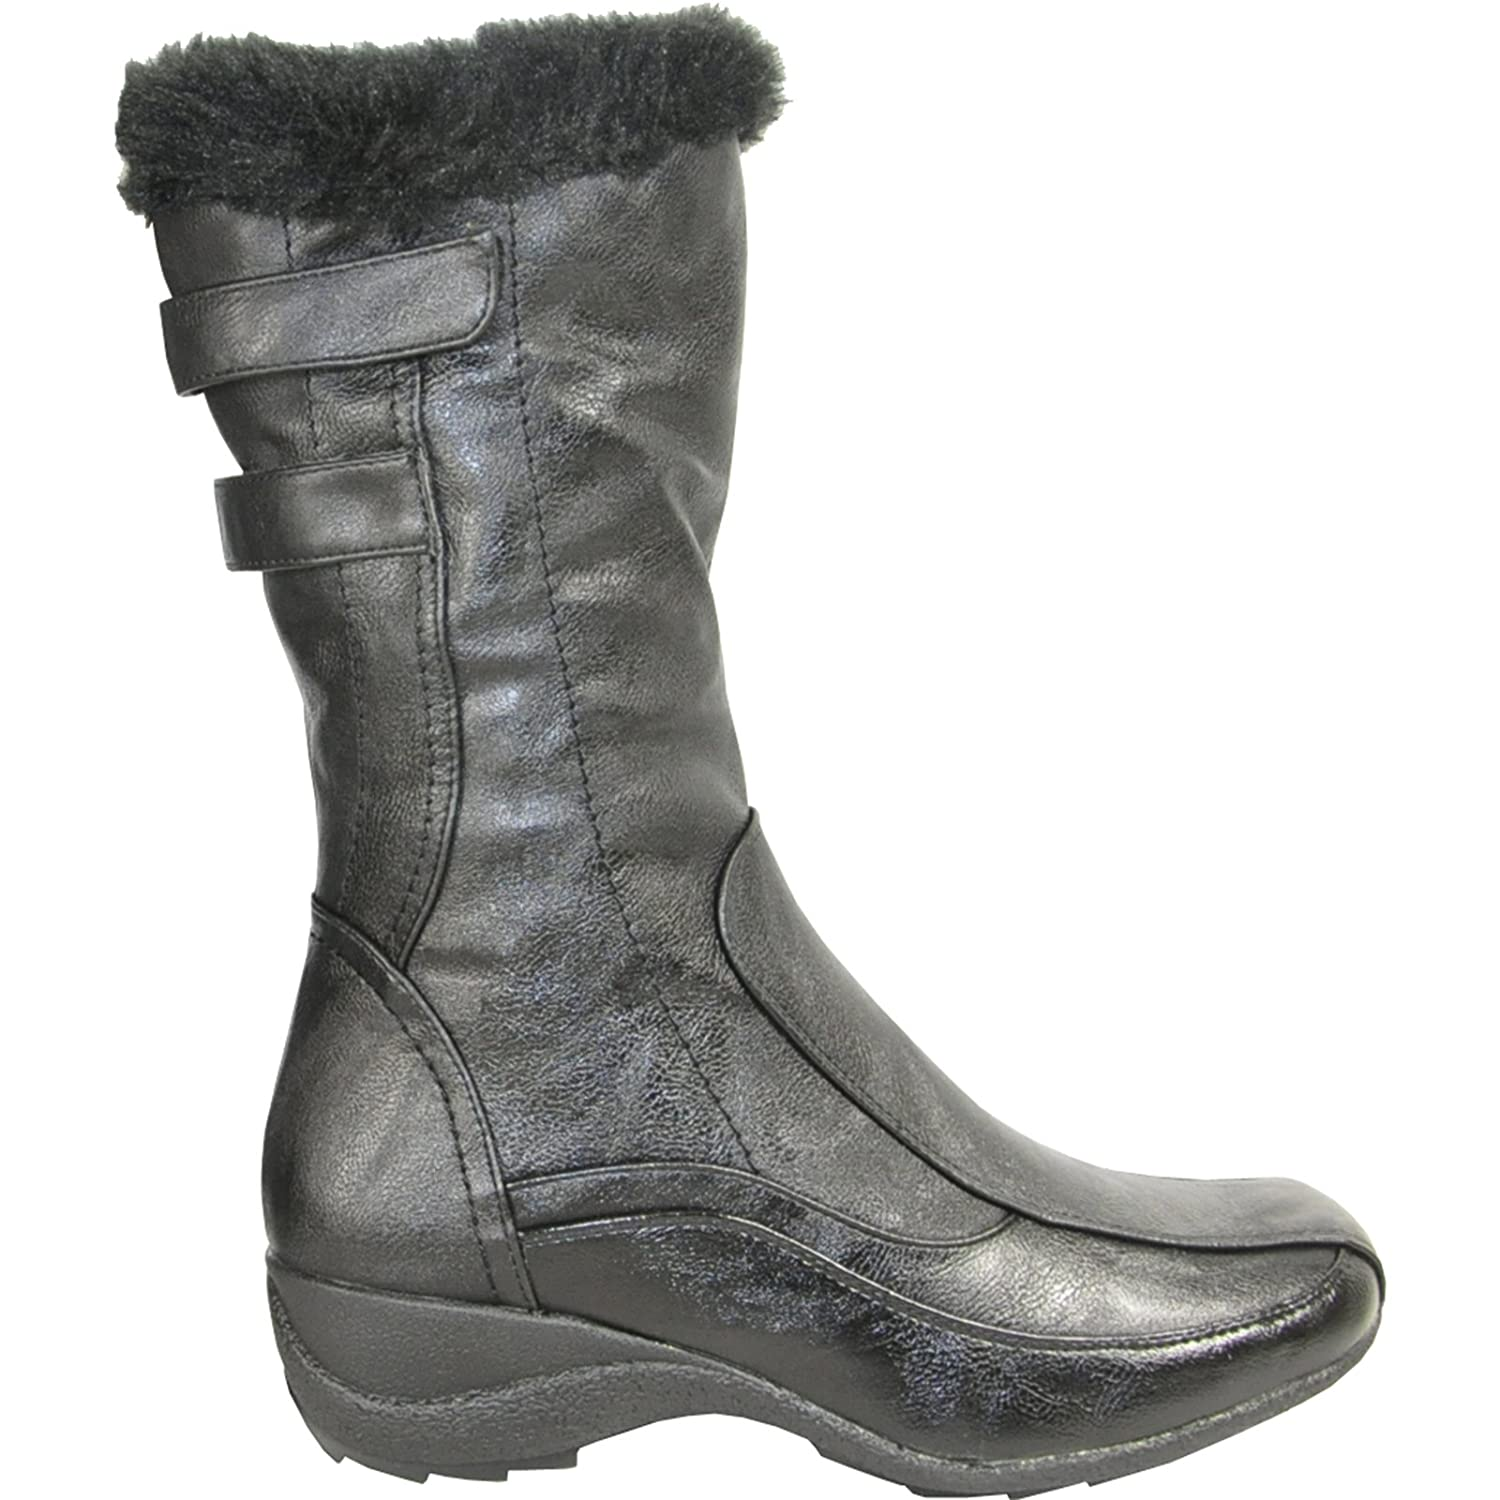 KOZI Women Casual Boots SD3412 Fur Lined with a Double Runner Square Toe